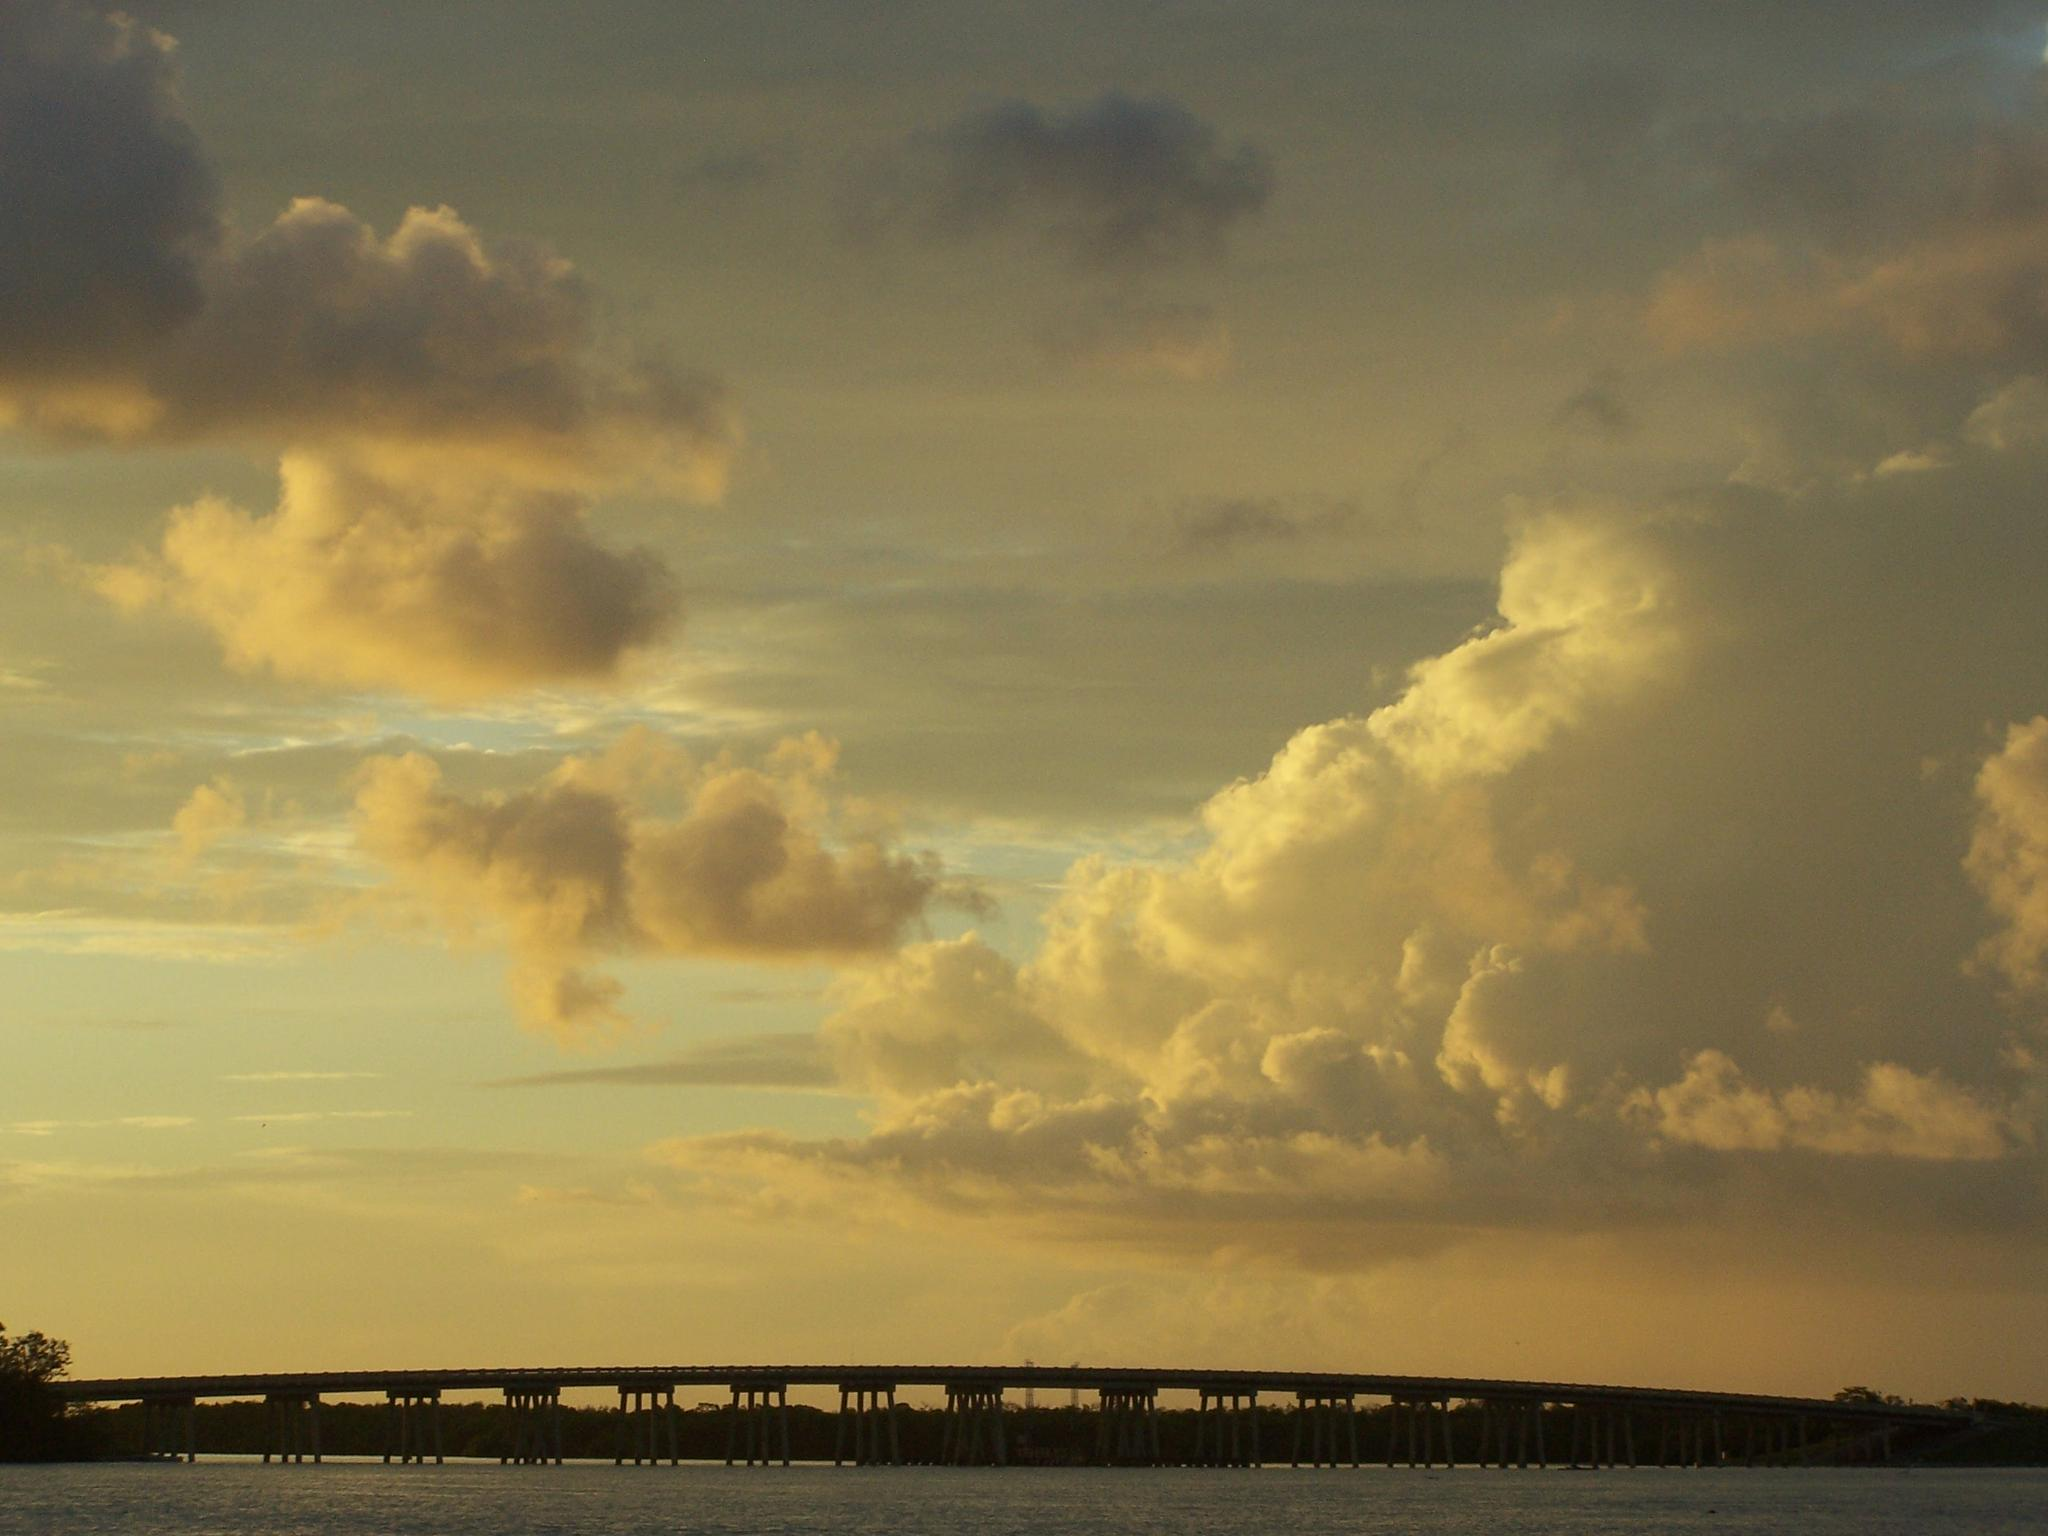 The Bridge Today by Todd